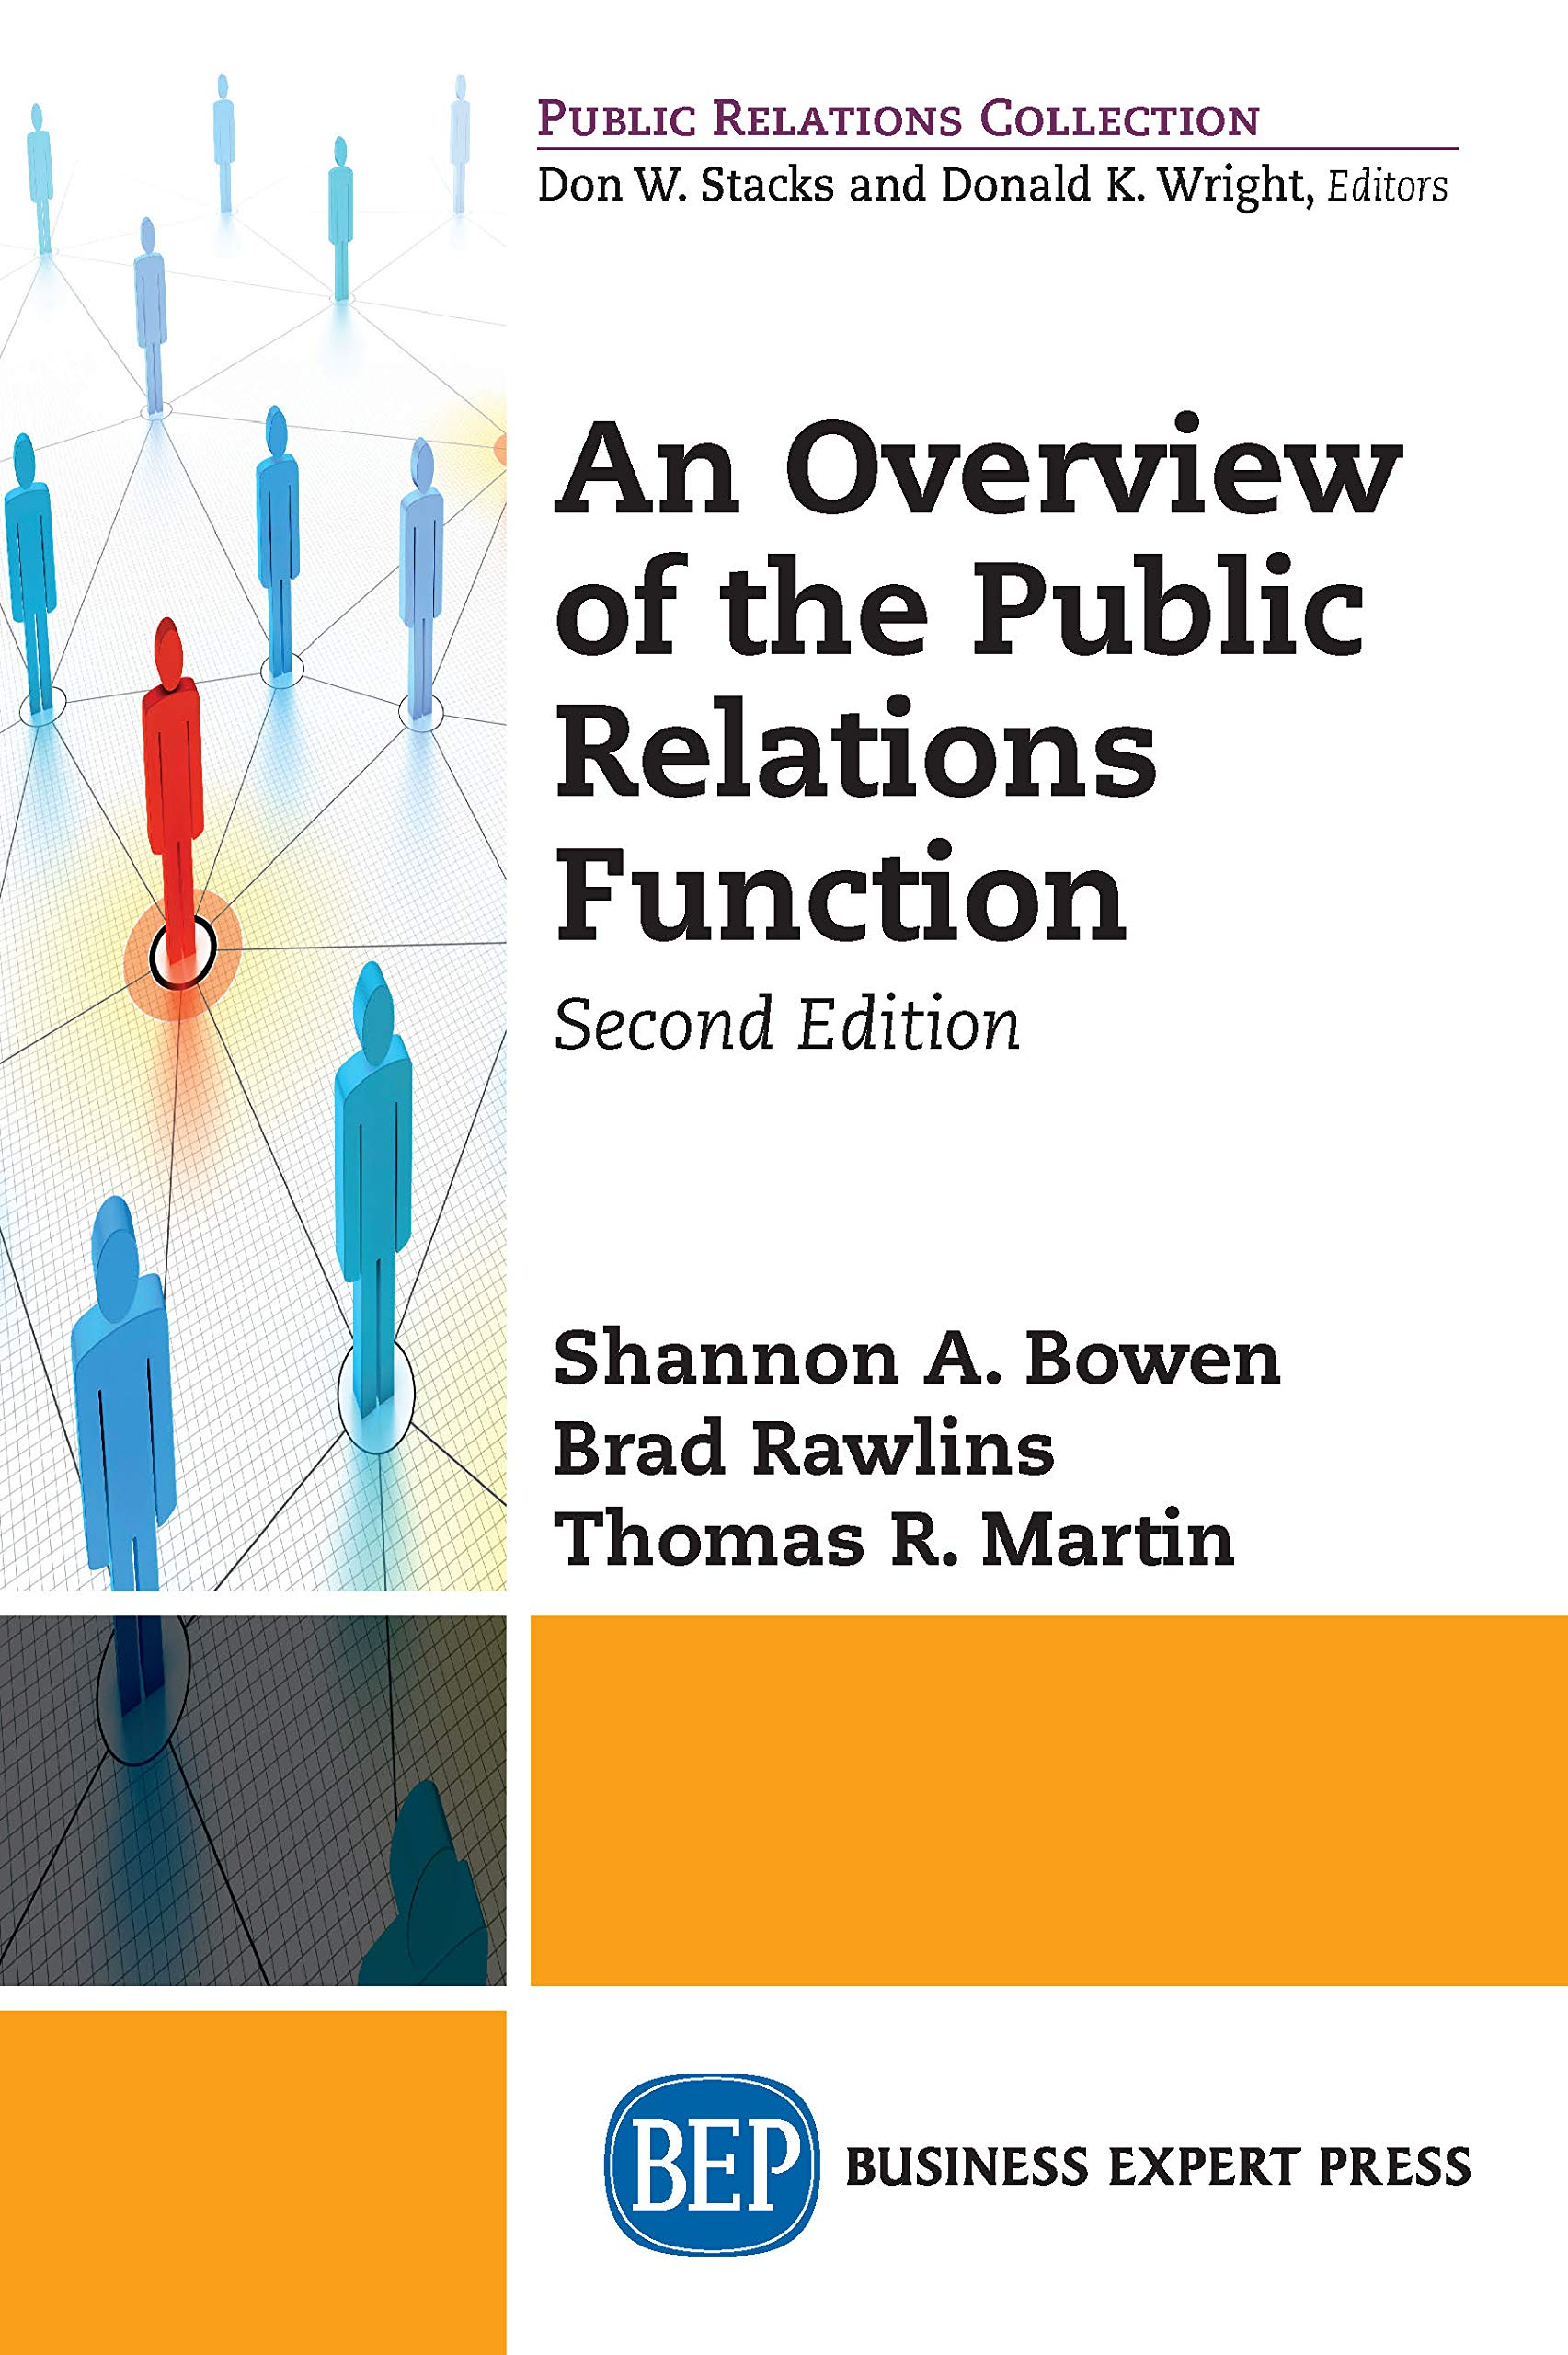 An Overview of The Public Relations Function, Second Edition